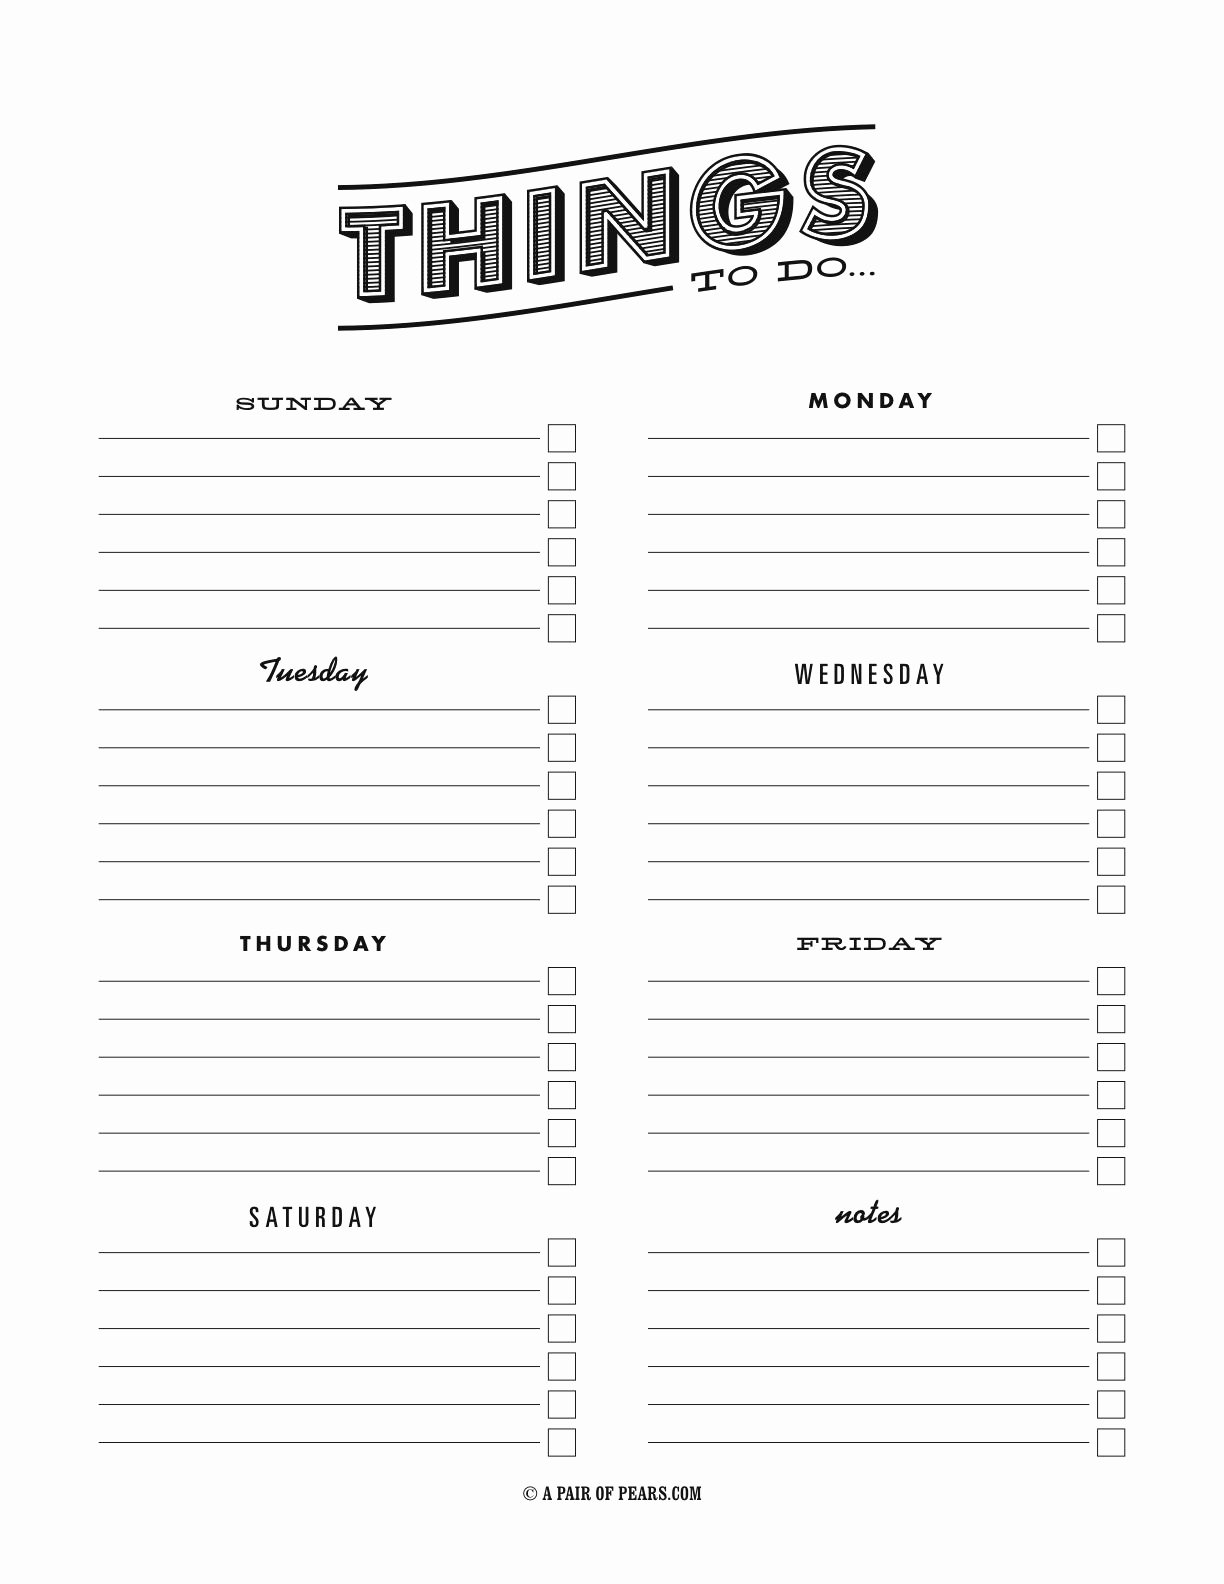 Things to Do List Template Lovely Things to Do Template Pdf Fancy to Do List